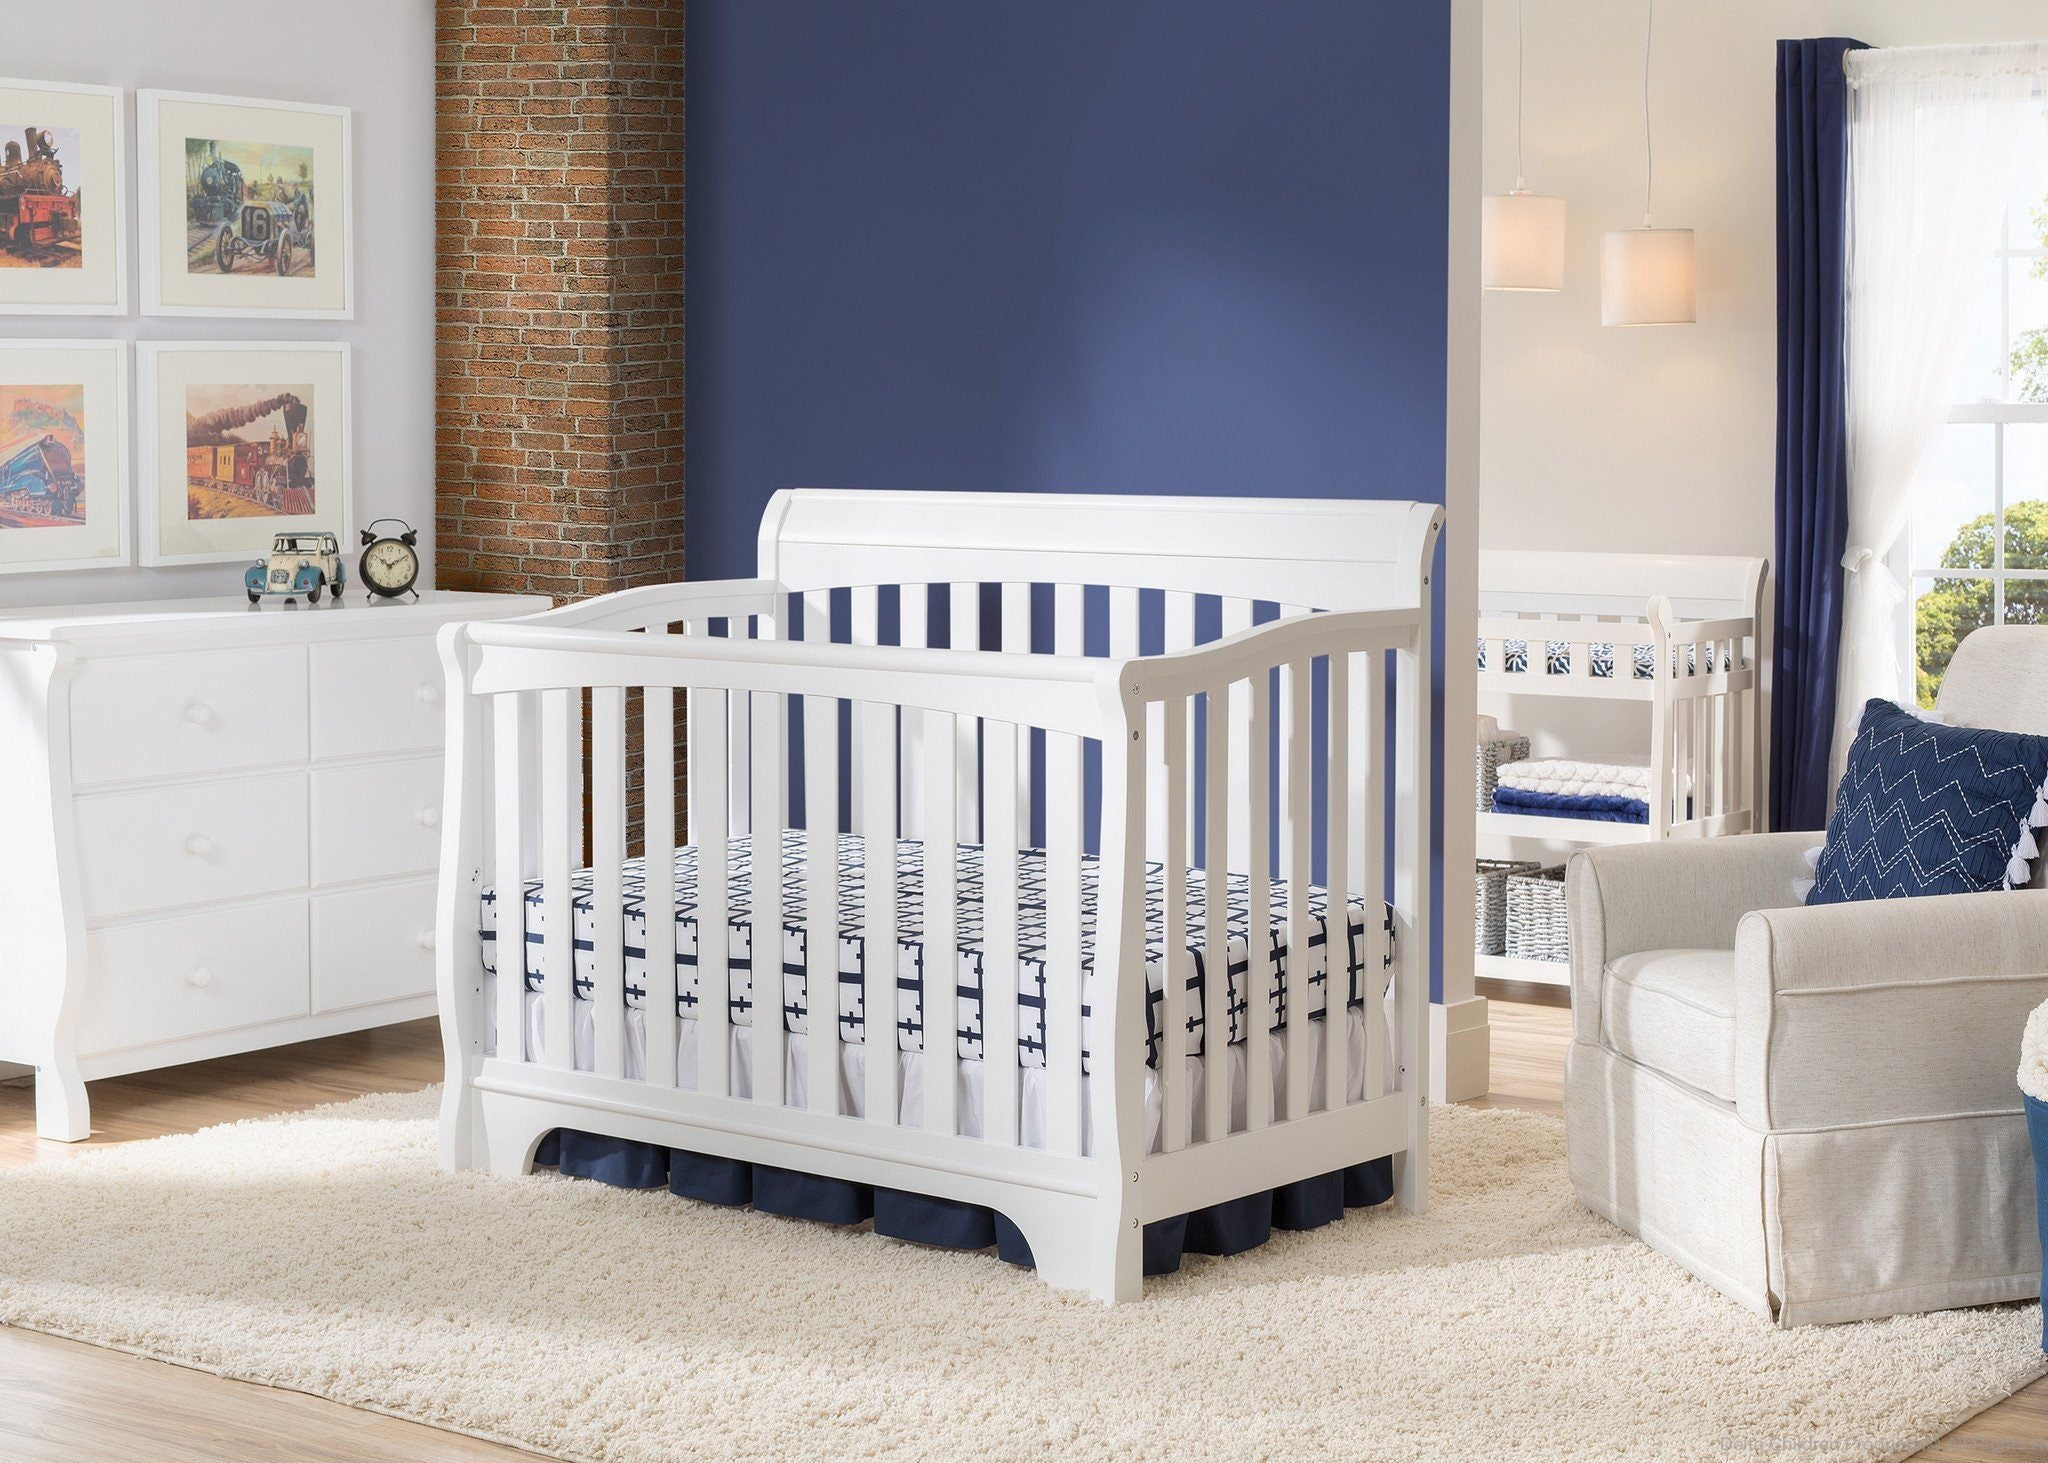 Delta Children White (100) Eclipse 4-in-1 Crib In Nursery a1a